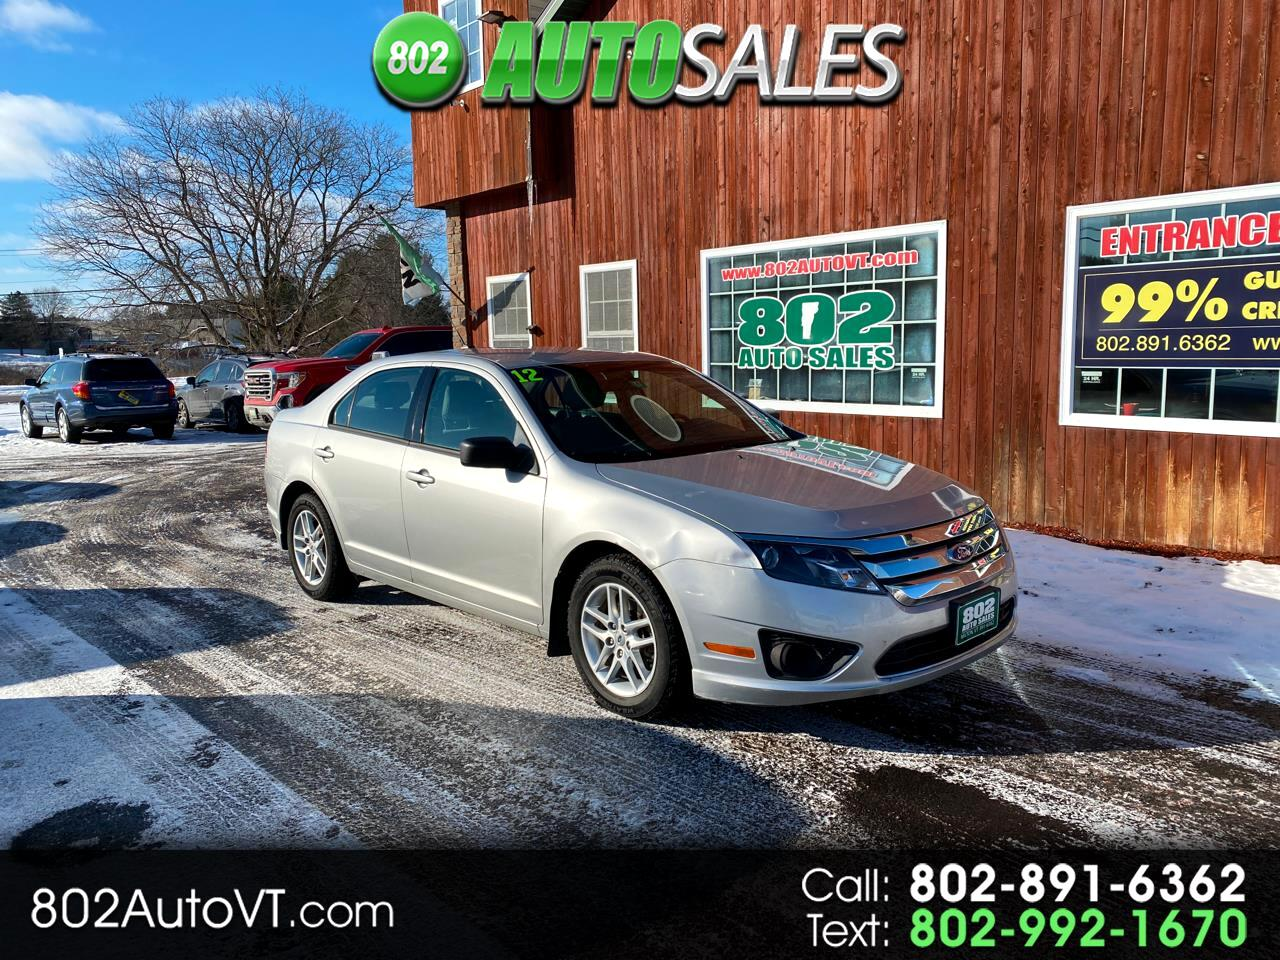 Ford Fusion 4dr Sdn S FWD 2012